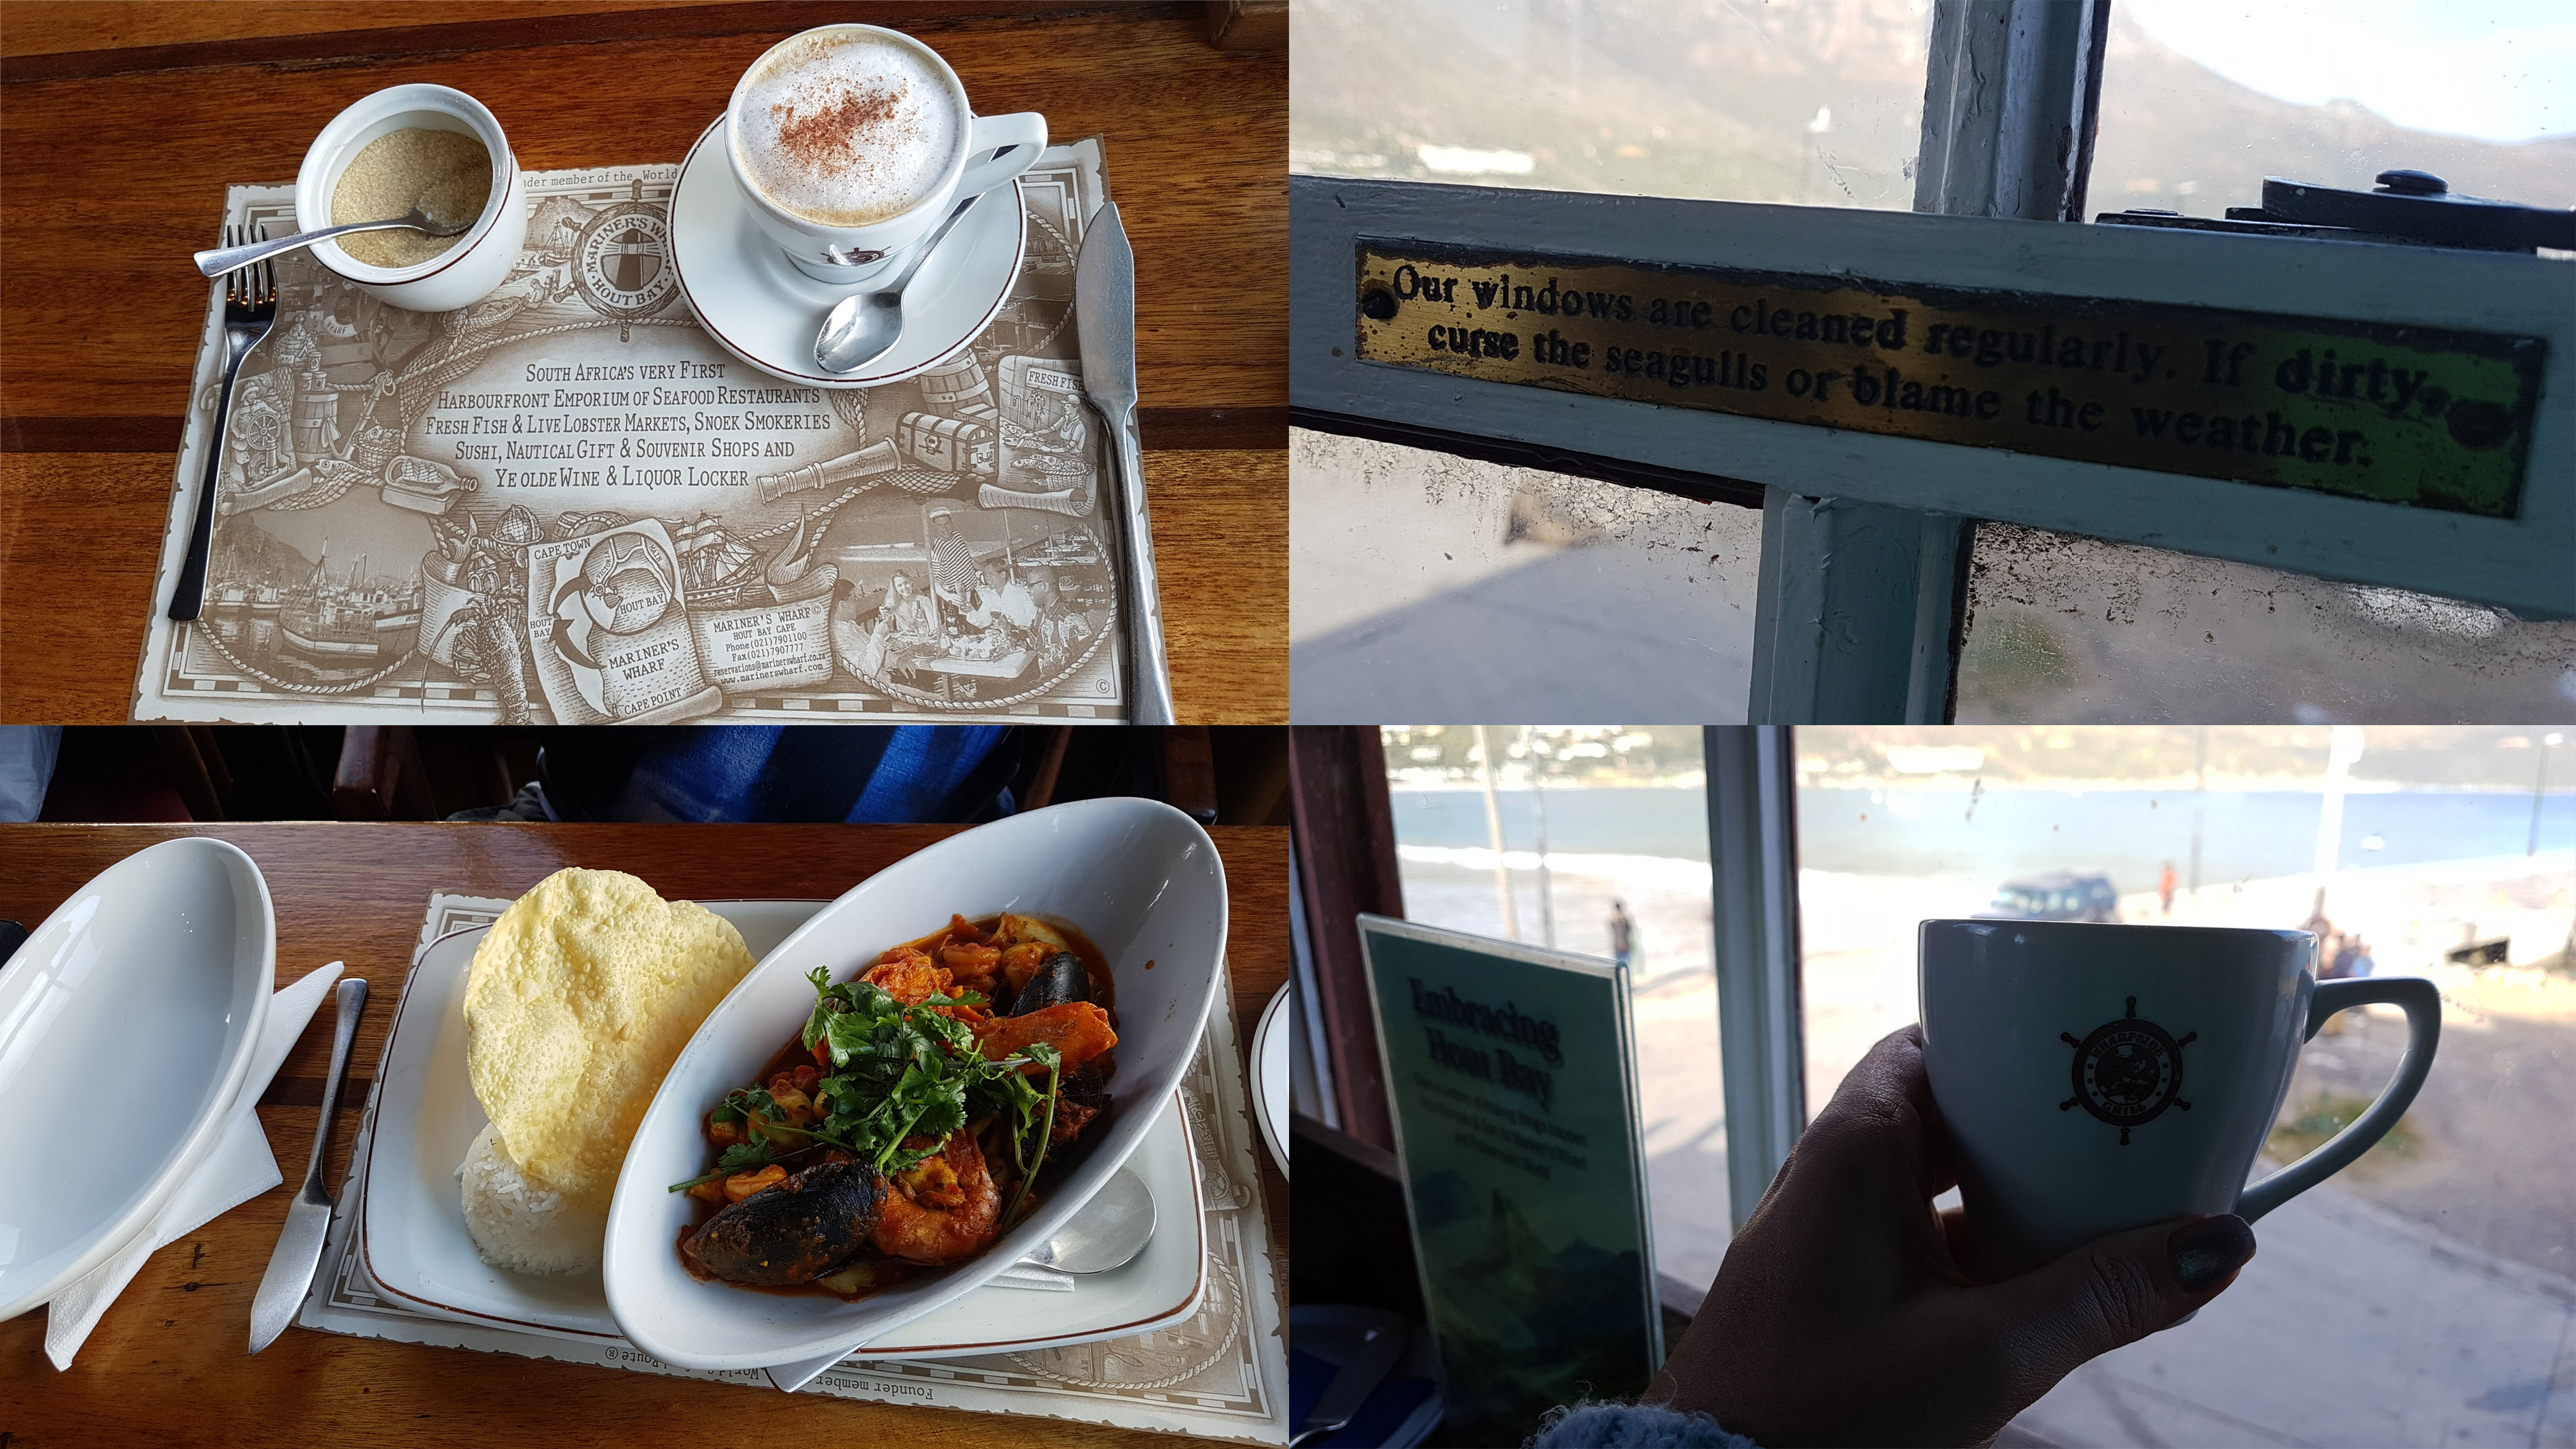 """I was still full from my slap chip session so stuck with a cappuccino while Husband sampled the seafood curry at the Mariner's Wharf restaurant upstairs. The slogan in the window frame says, """"Our windows are cleaned regularly. If dirty, curse the seagulls or blame the weather."""""""